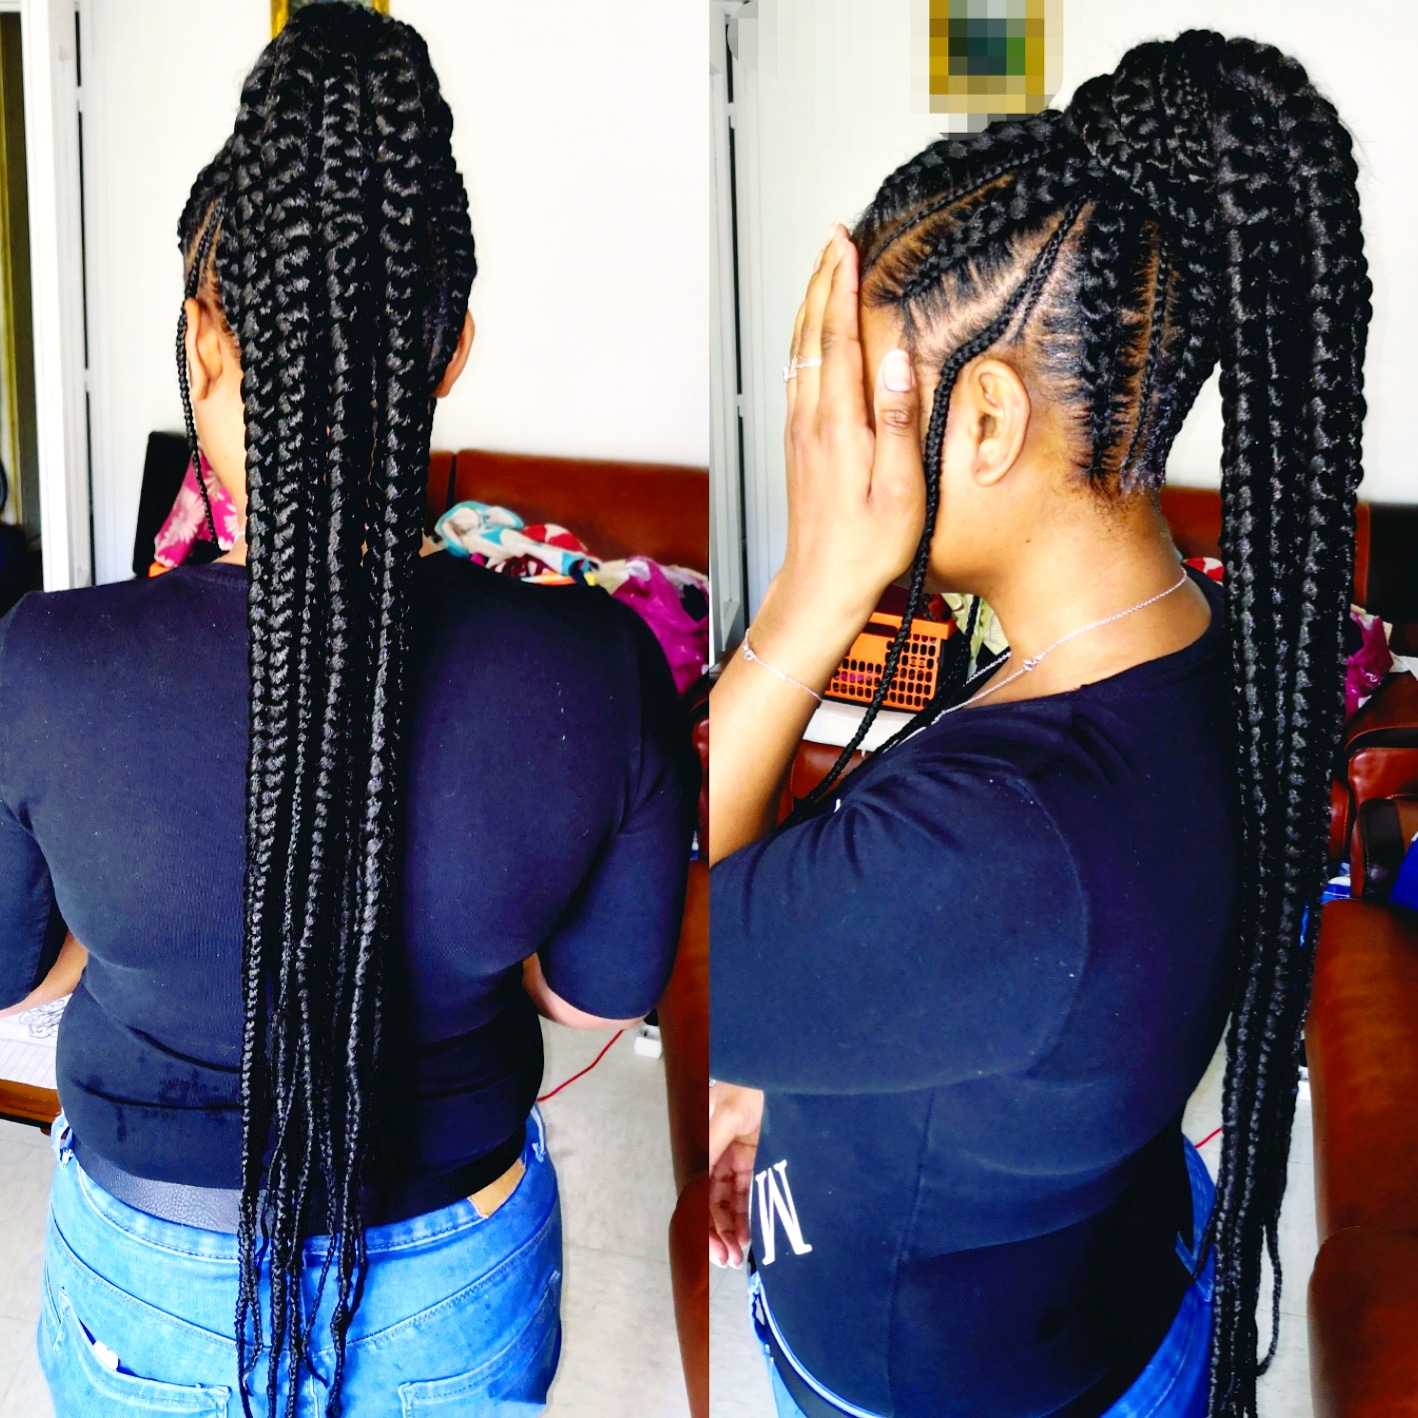 salon de coiffure afro tresse tresses box braids crochet braids vanilles tissages paris 75 77 78 91 92 93 94 95 HBGKCZQK